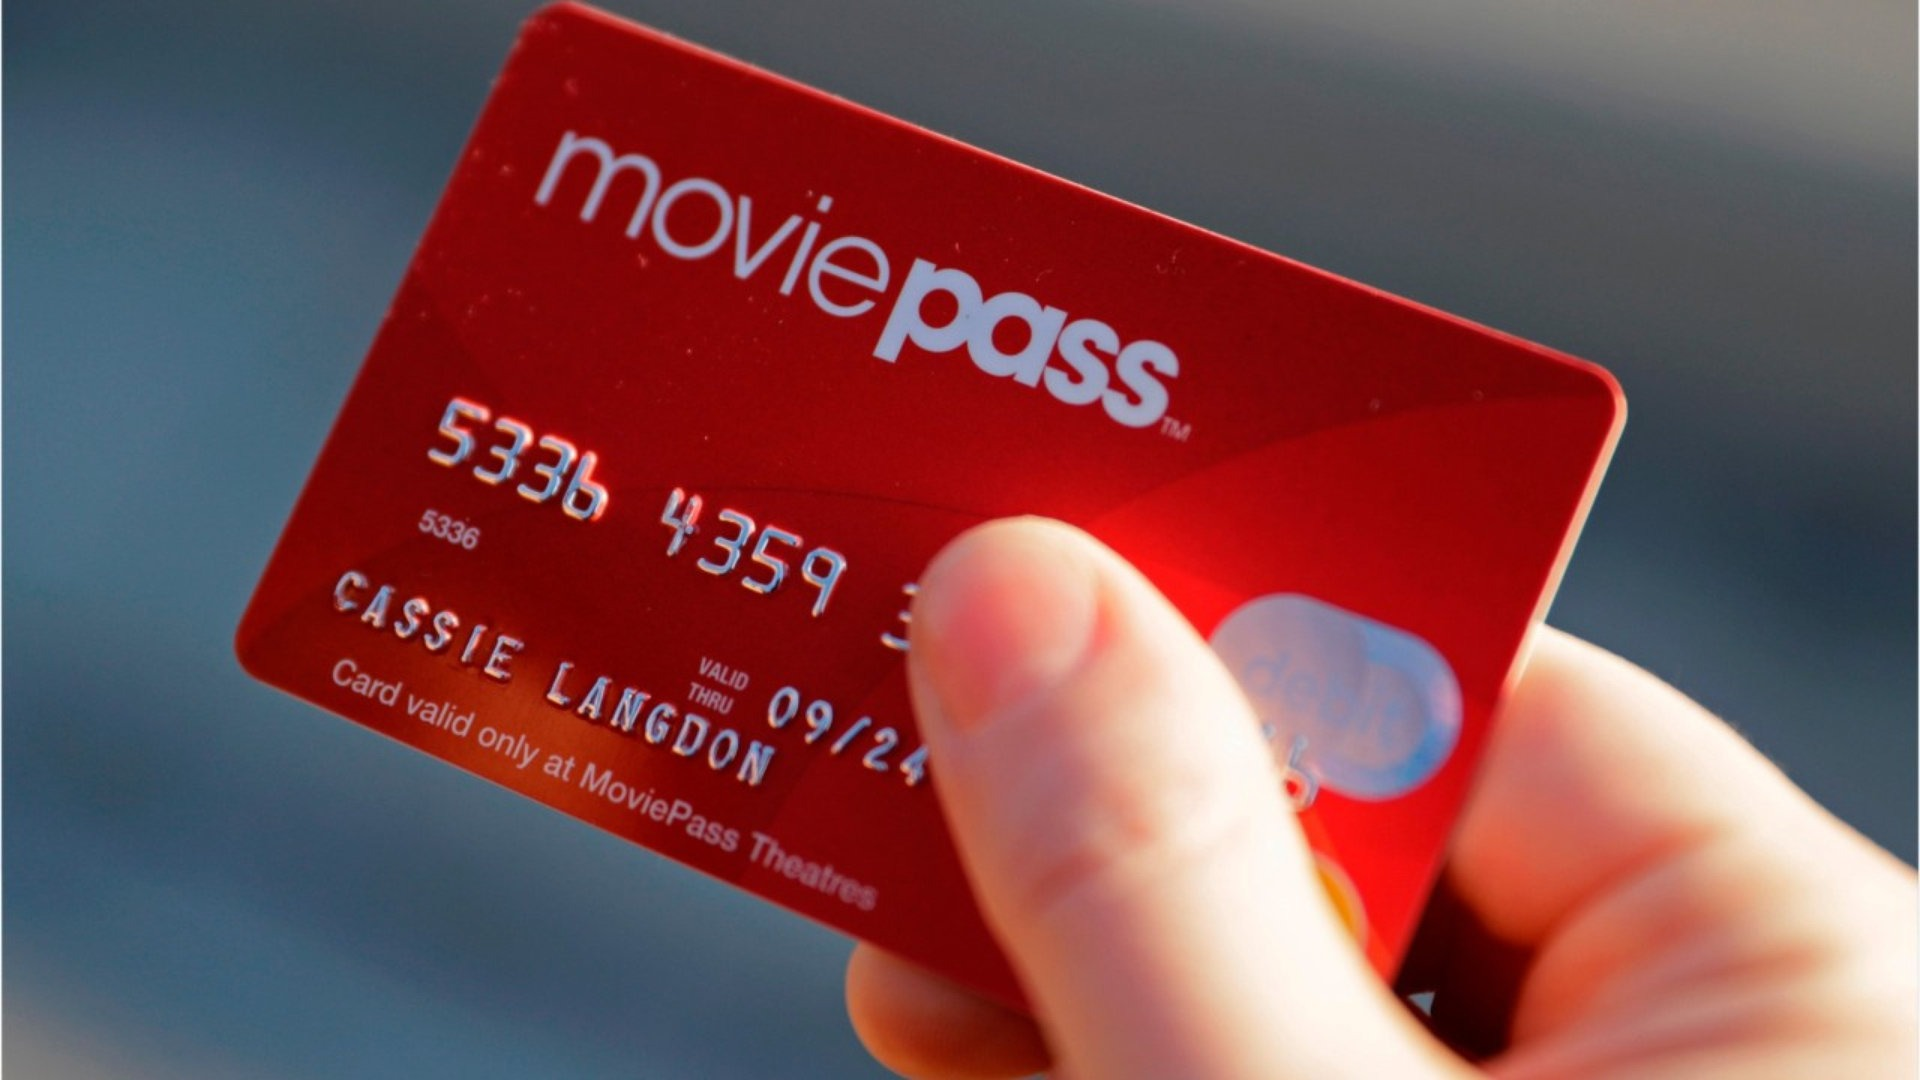 moviepass-is-reportedly-resubscribing-cancelled-subscriptions-social.jpg